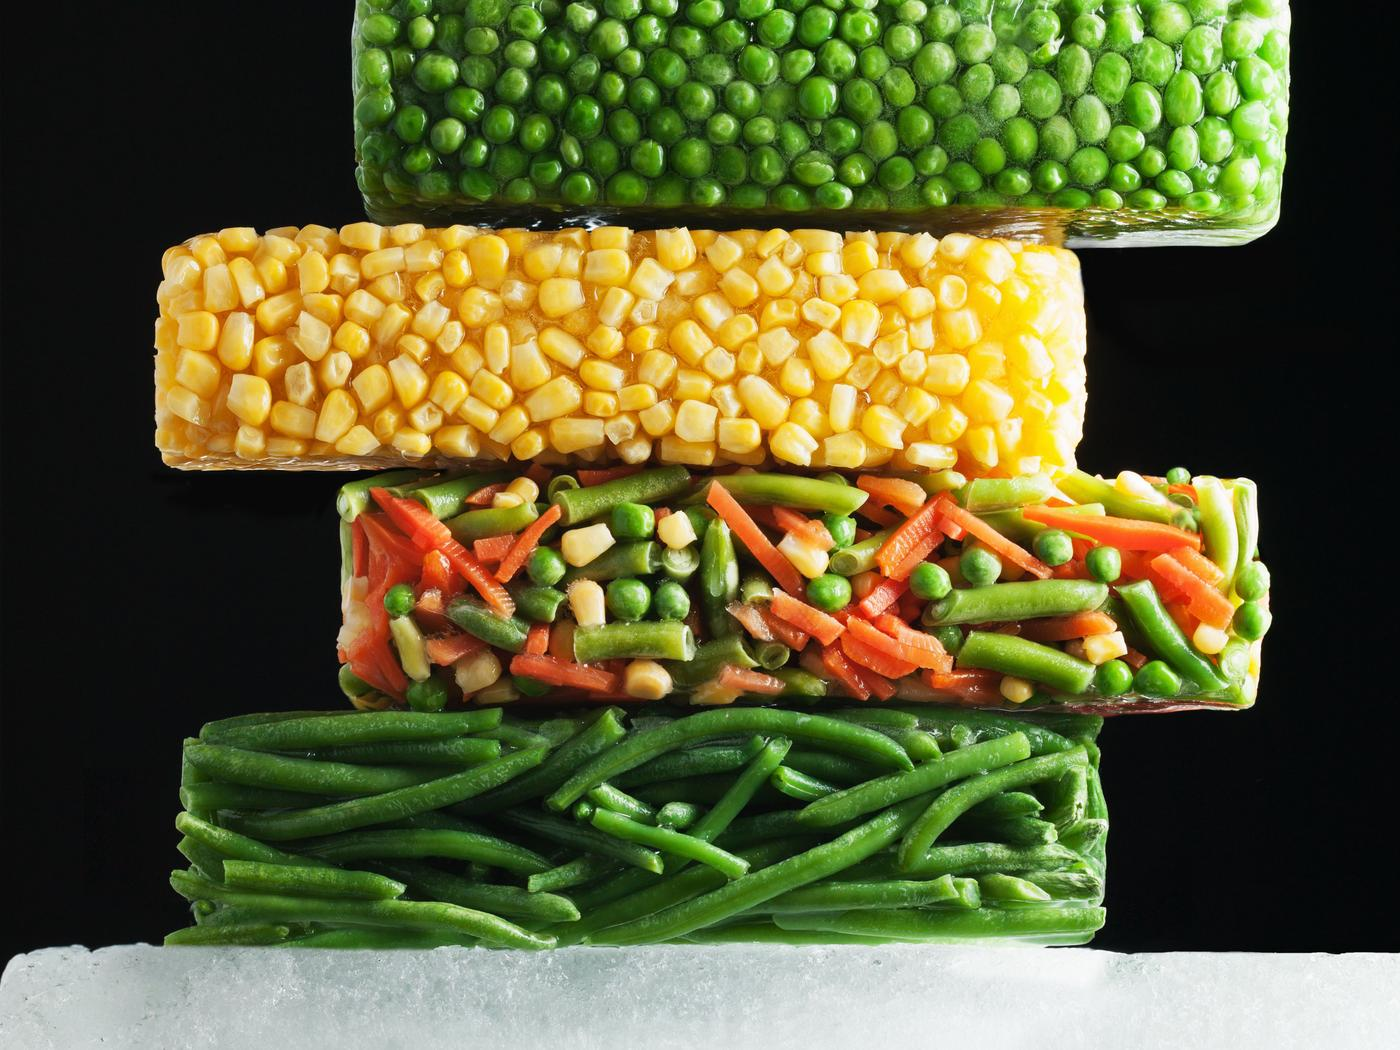 Frozen Vegetables Good For A Special Meal Hd Food Wallpaper